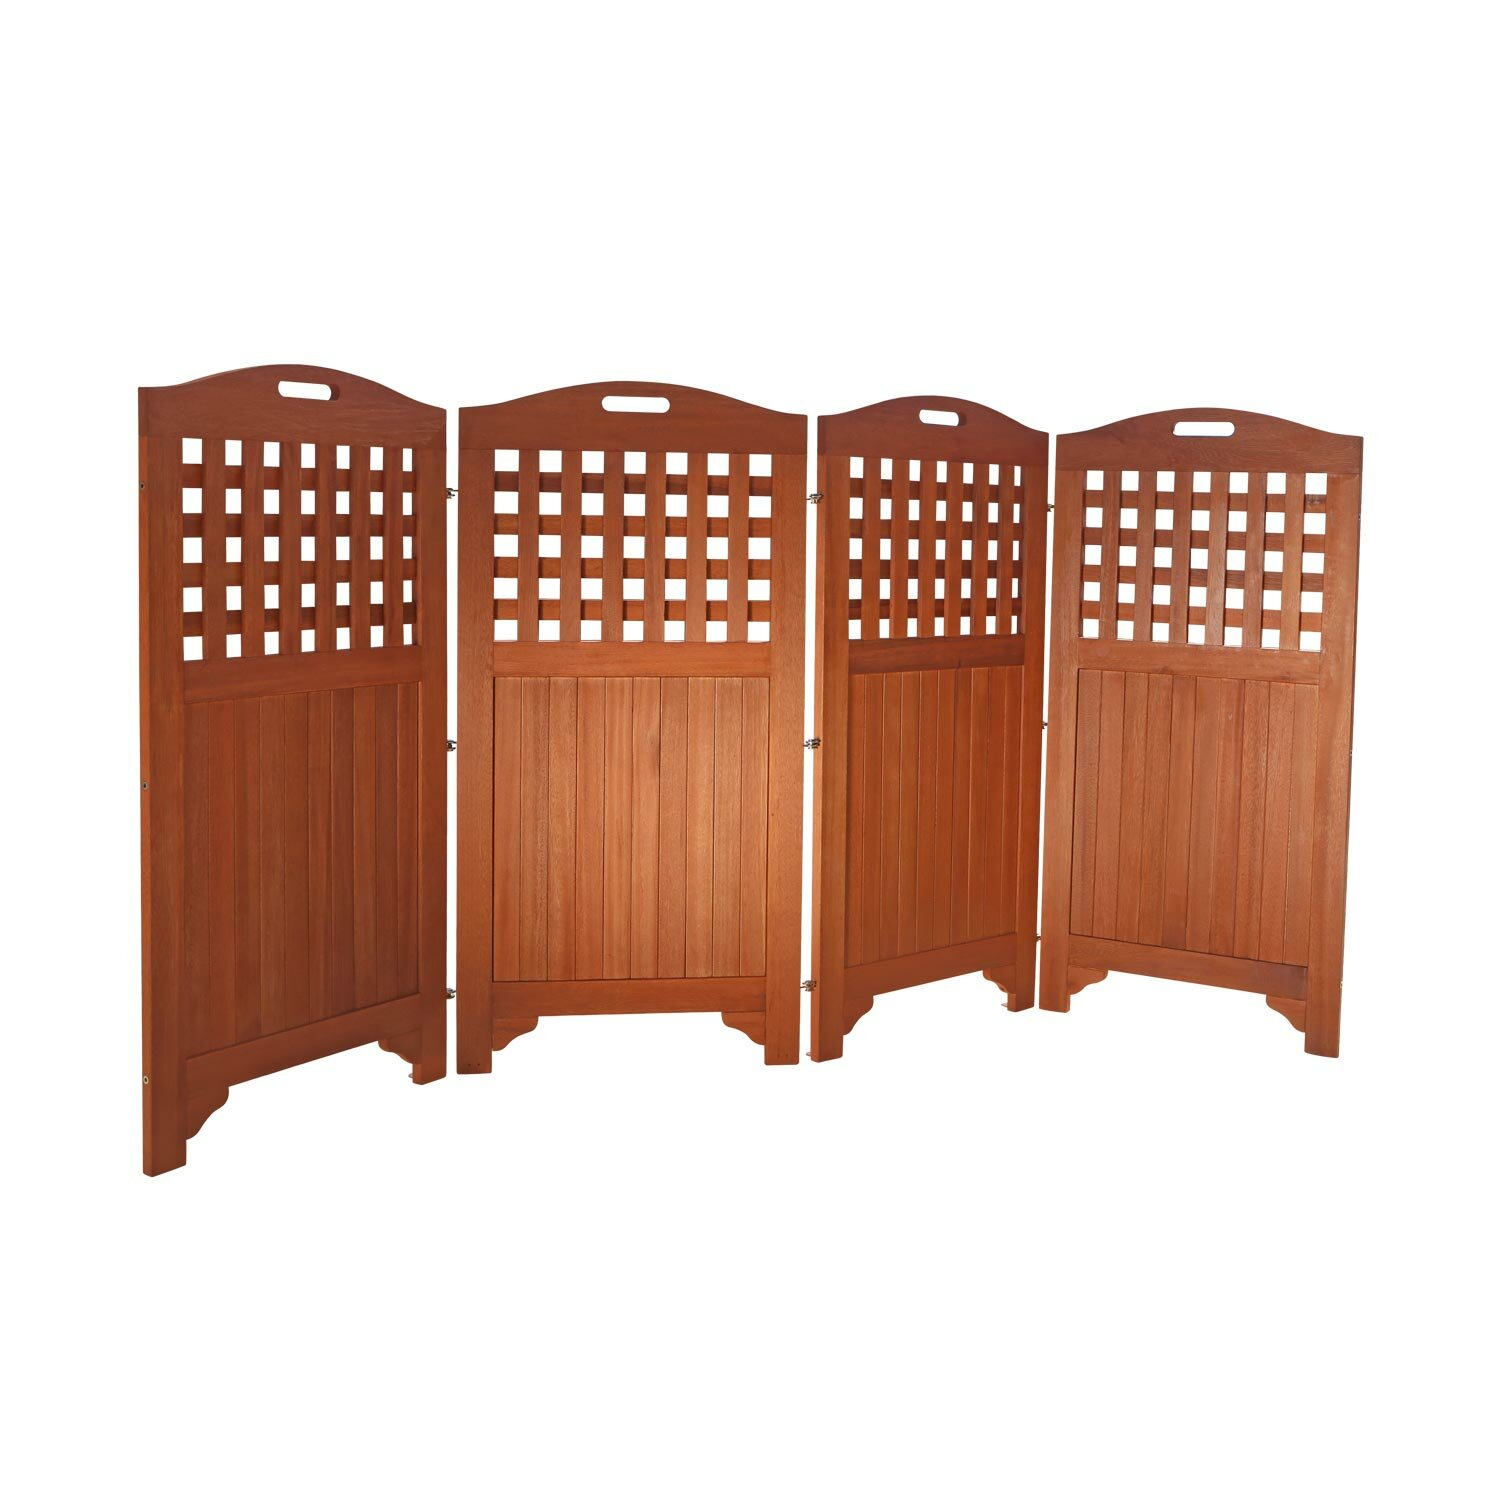 Vifah outdoor wood privacy screen reviews wayfair for Wood patio privacy screens